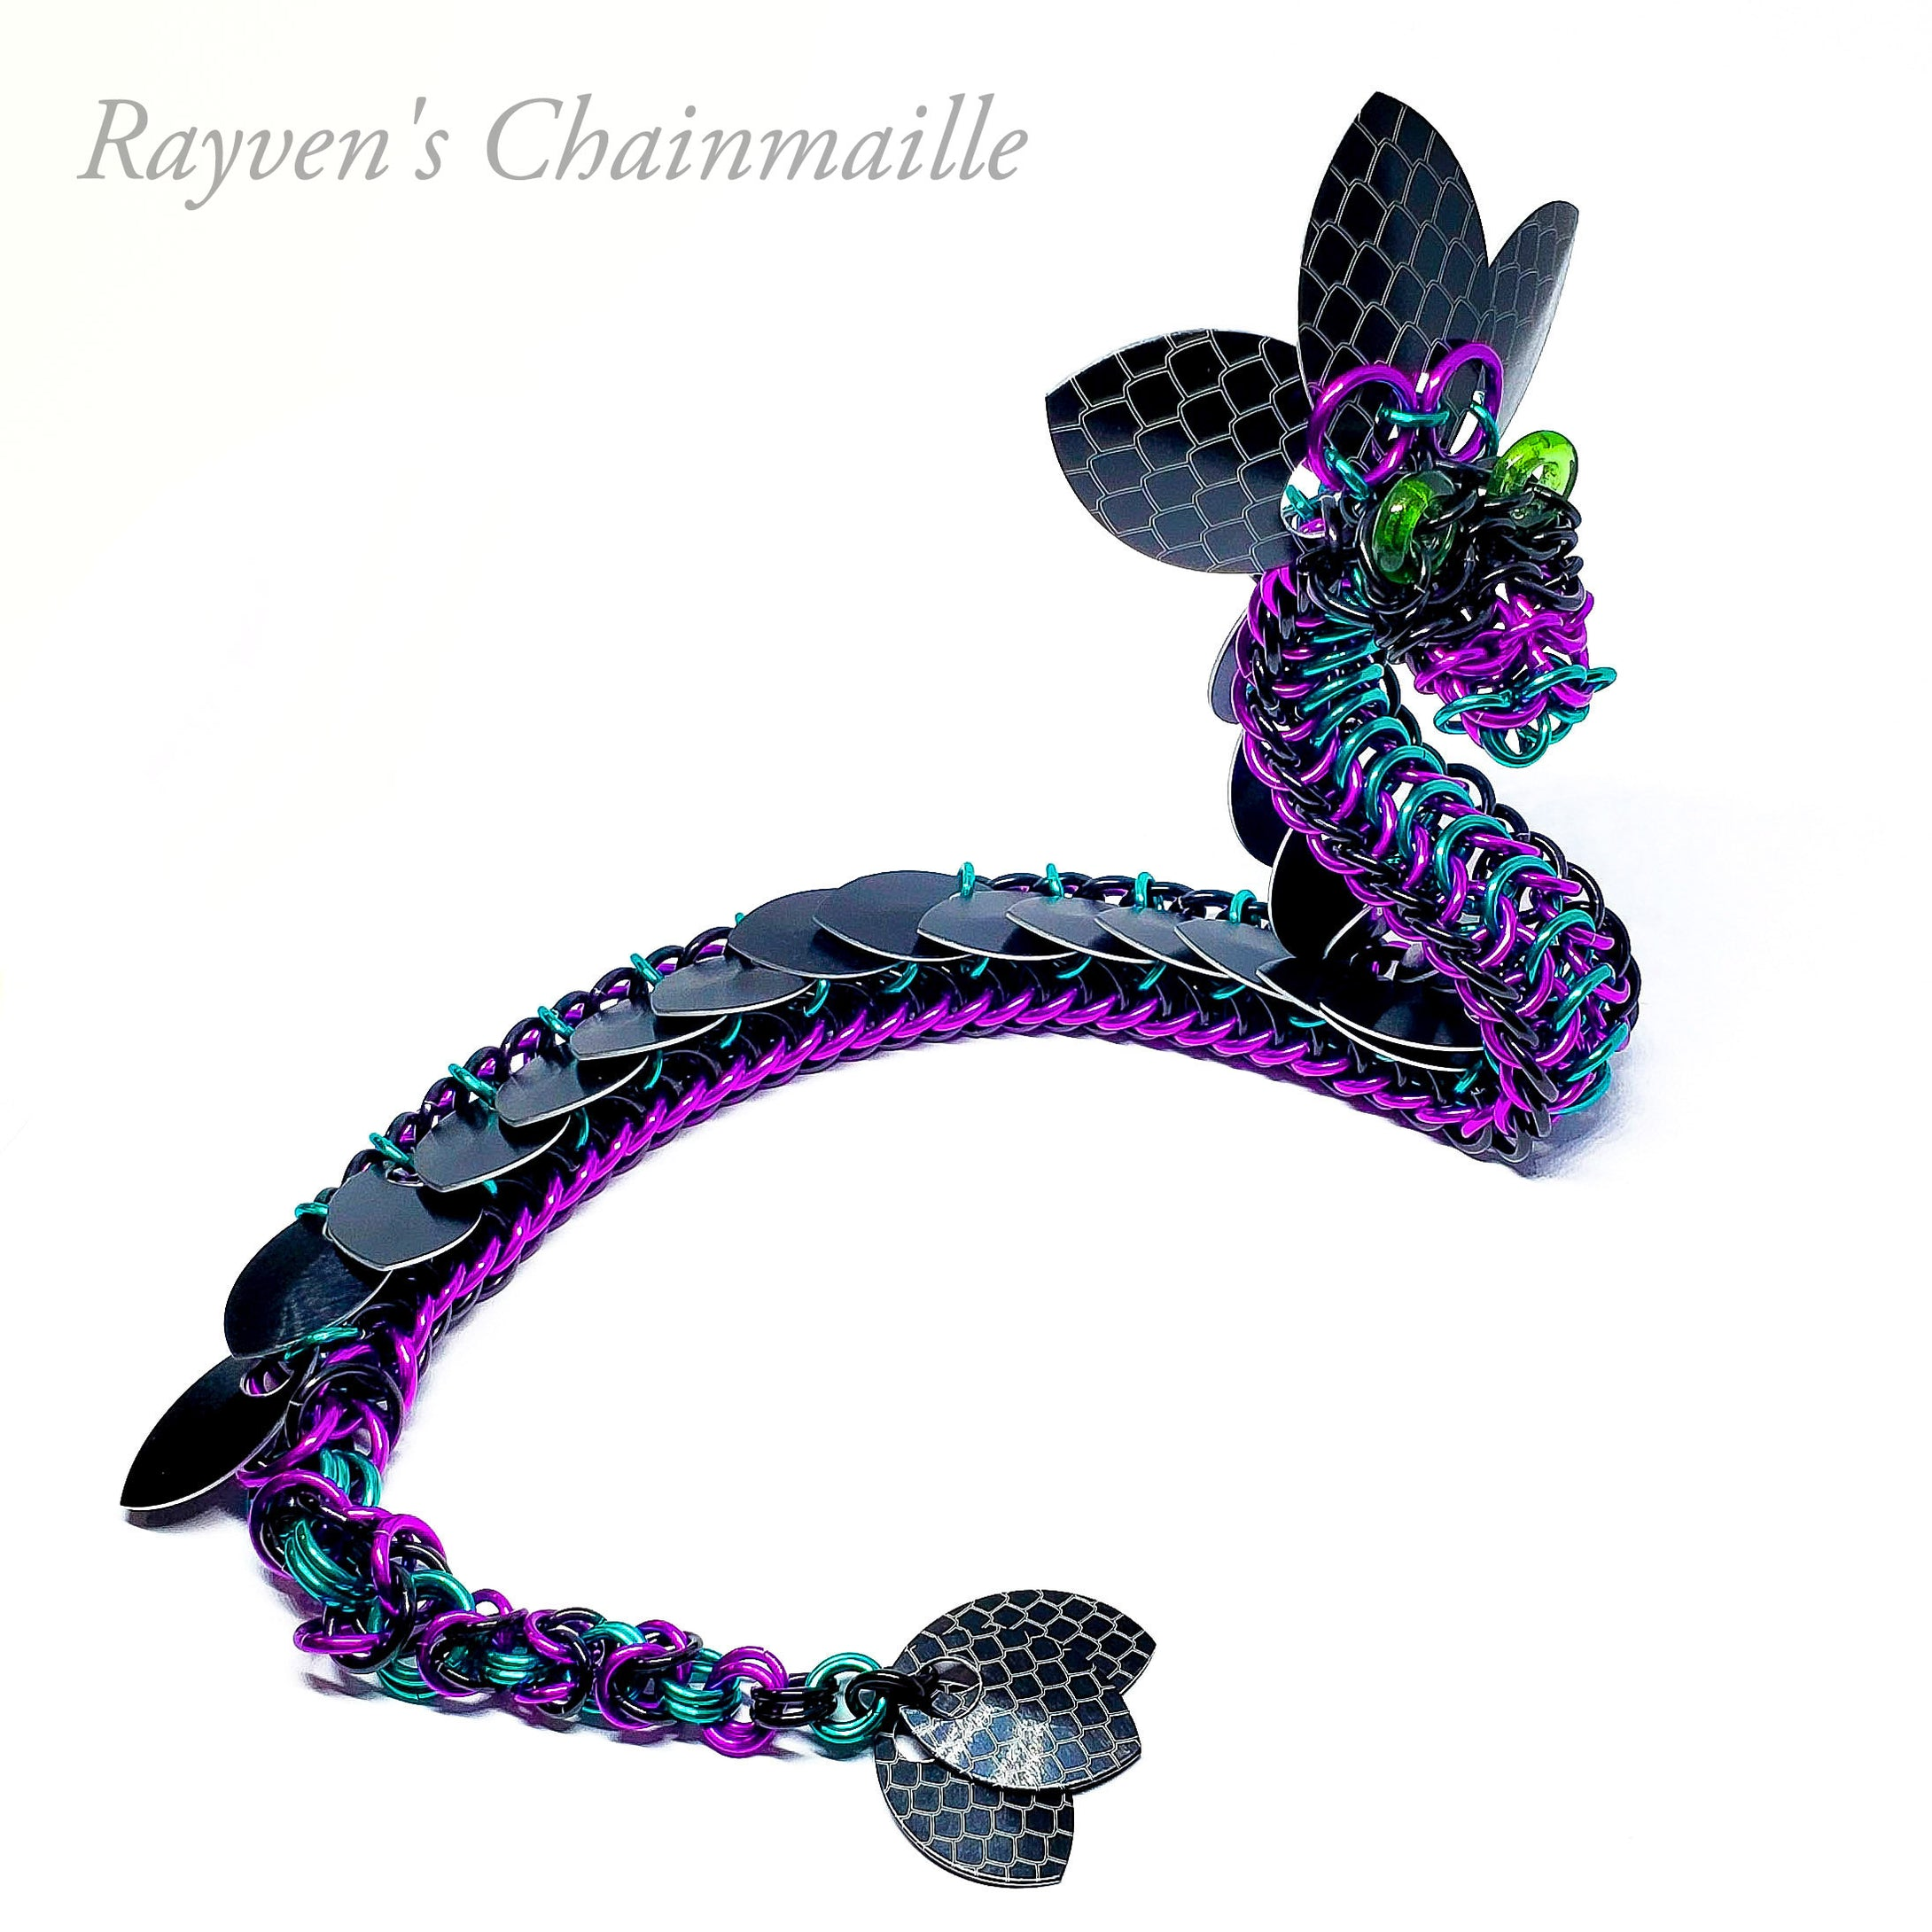 Cosmo Chainmail Dragon Sculpture - Rayven's Chainmaille